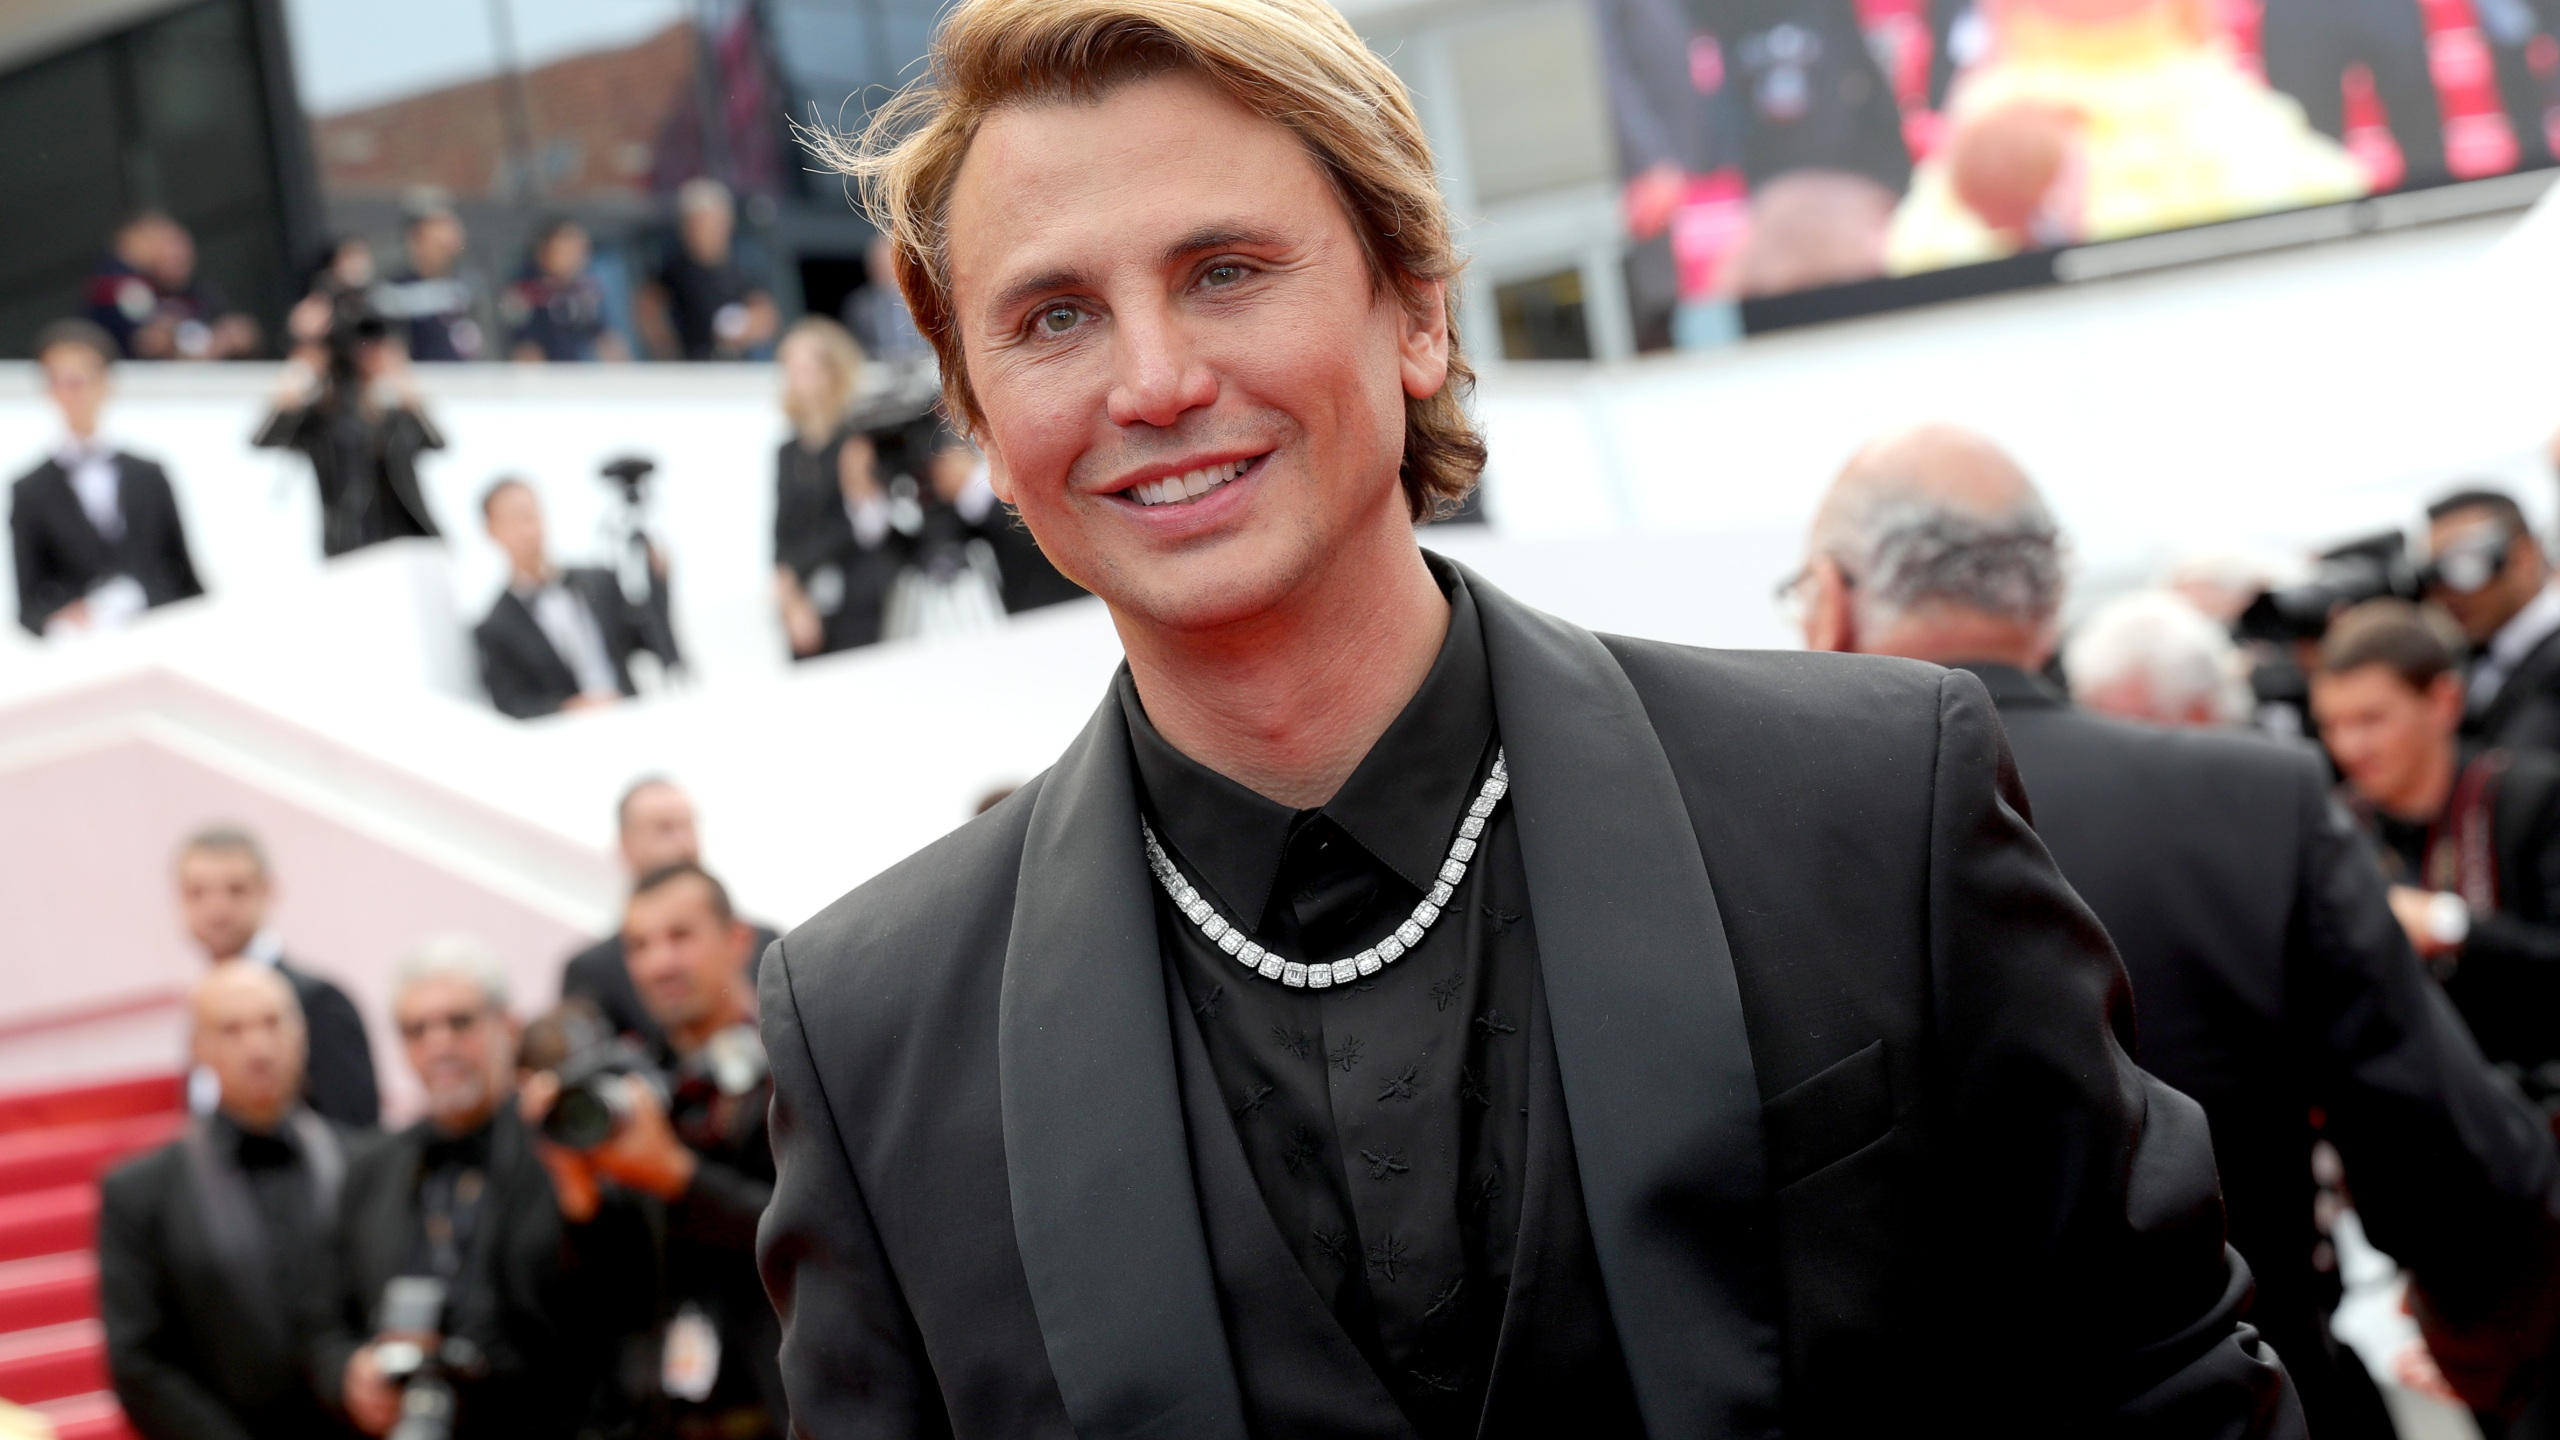 Jonathan Cheban attends a screening during the 72nd annual Cannes Film Festival on May 22, 2019, in Cannes, France. (Vittorio Zunino Celotto/Getty Images)